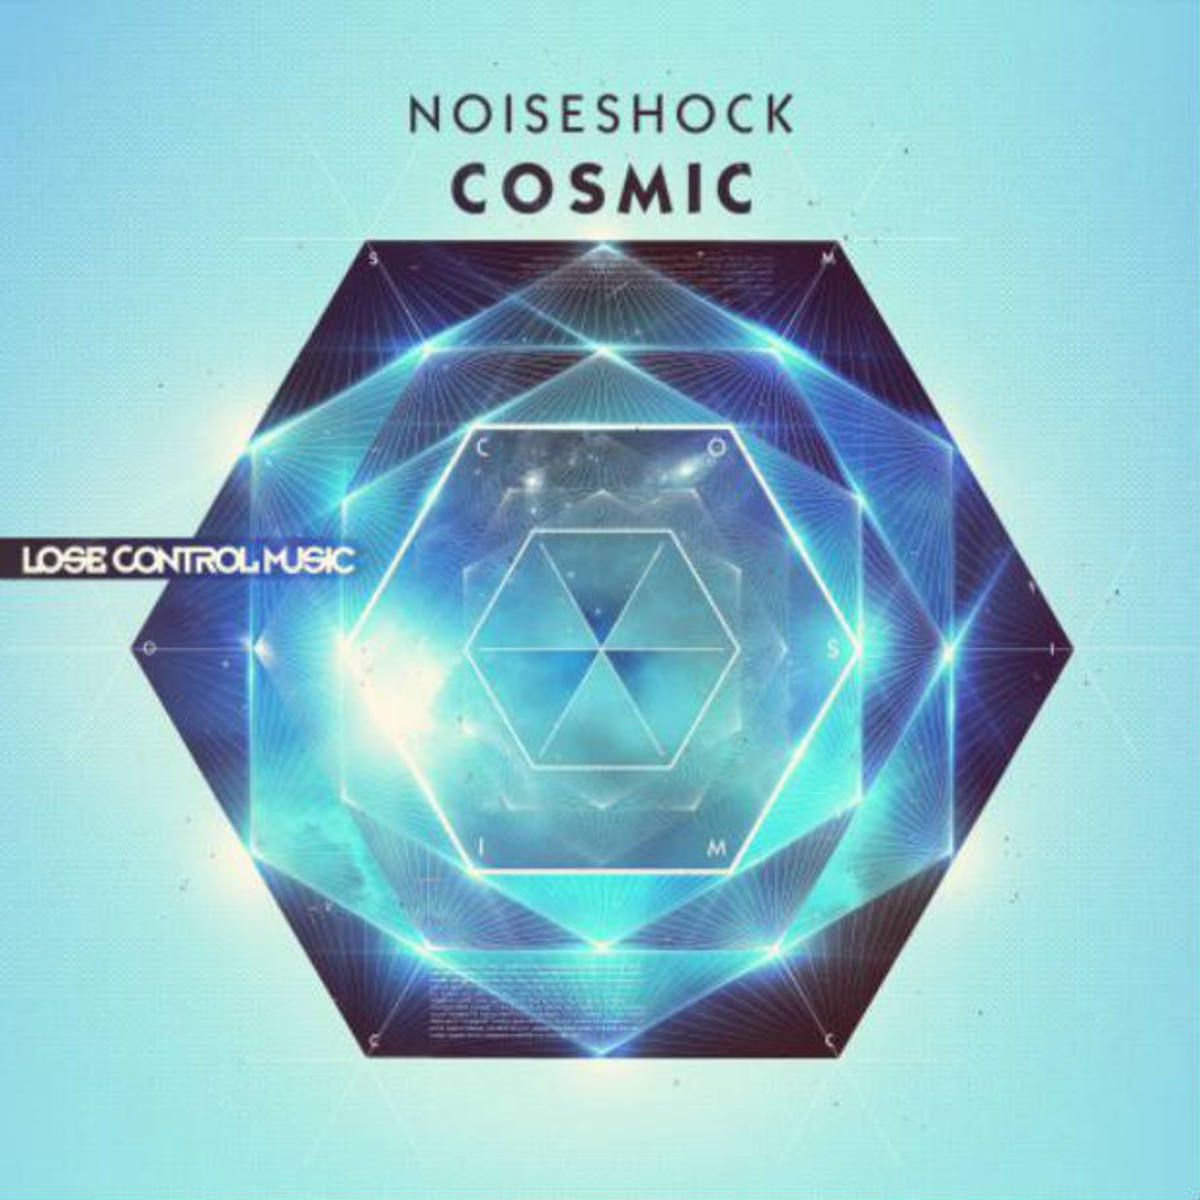 NoiseshockCosmic